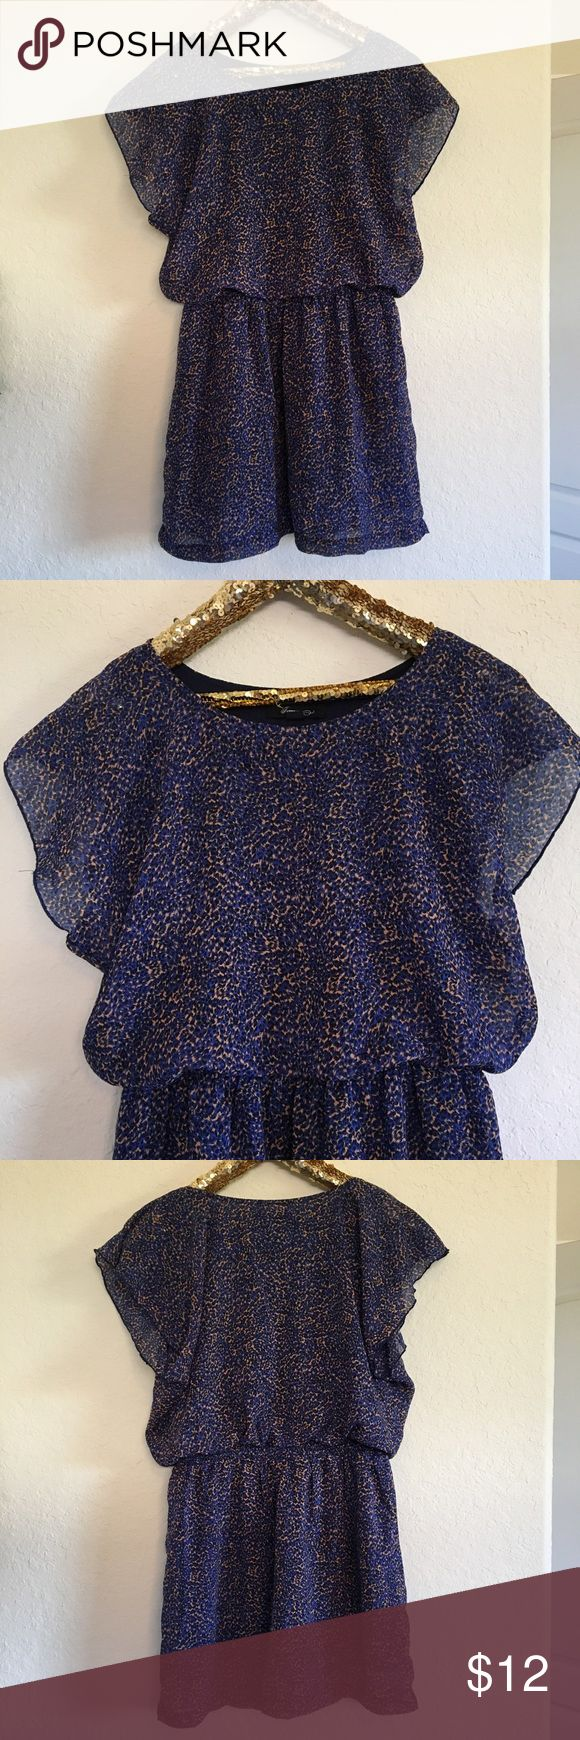 Forever 21 Navy Dress This stylish Forever 21 navy dress is in like-new condition and perfect for the fall season! It has a stretchy waist and looks so cute dressed up or down.  🚭 From a smoke-free home ❌ No trades or off PoshMark sales 🛍 Bundles welcome and encouraged 👌🏻 Reasonable offers welcome ⚡️ Same/next day shipping 🌬 All items are steamed before shipping Forever 21 Dresses